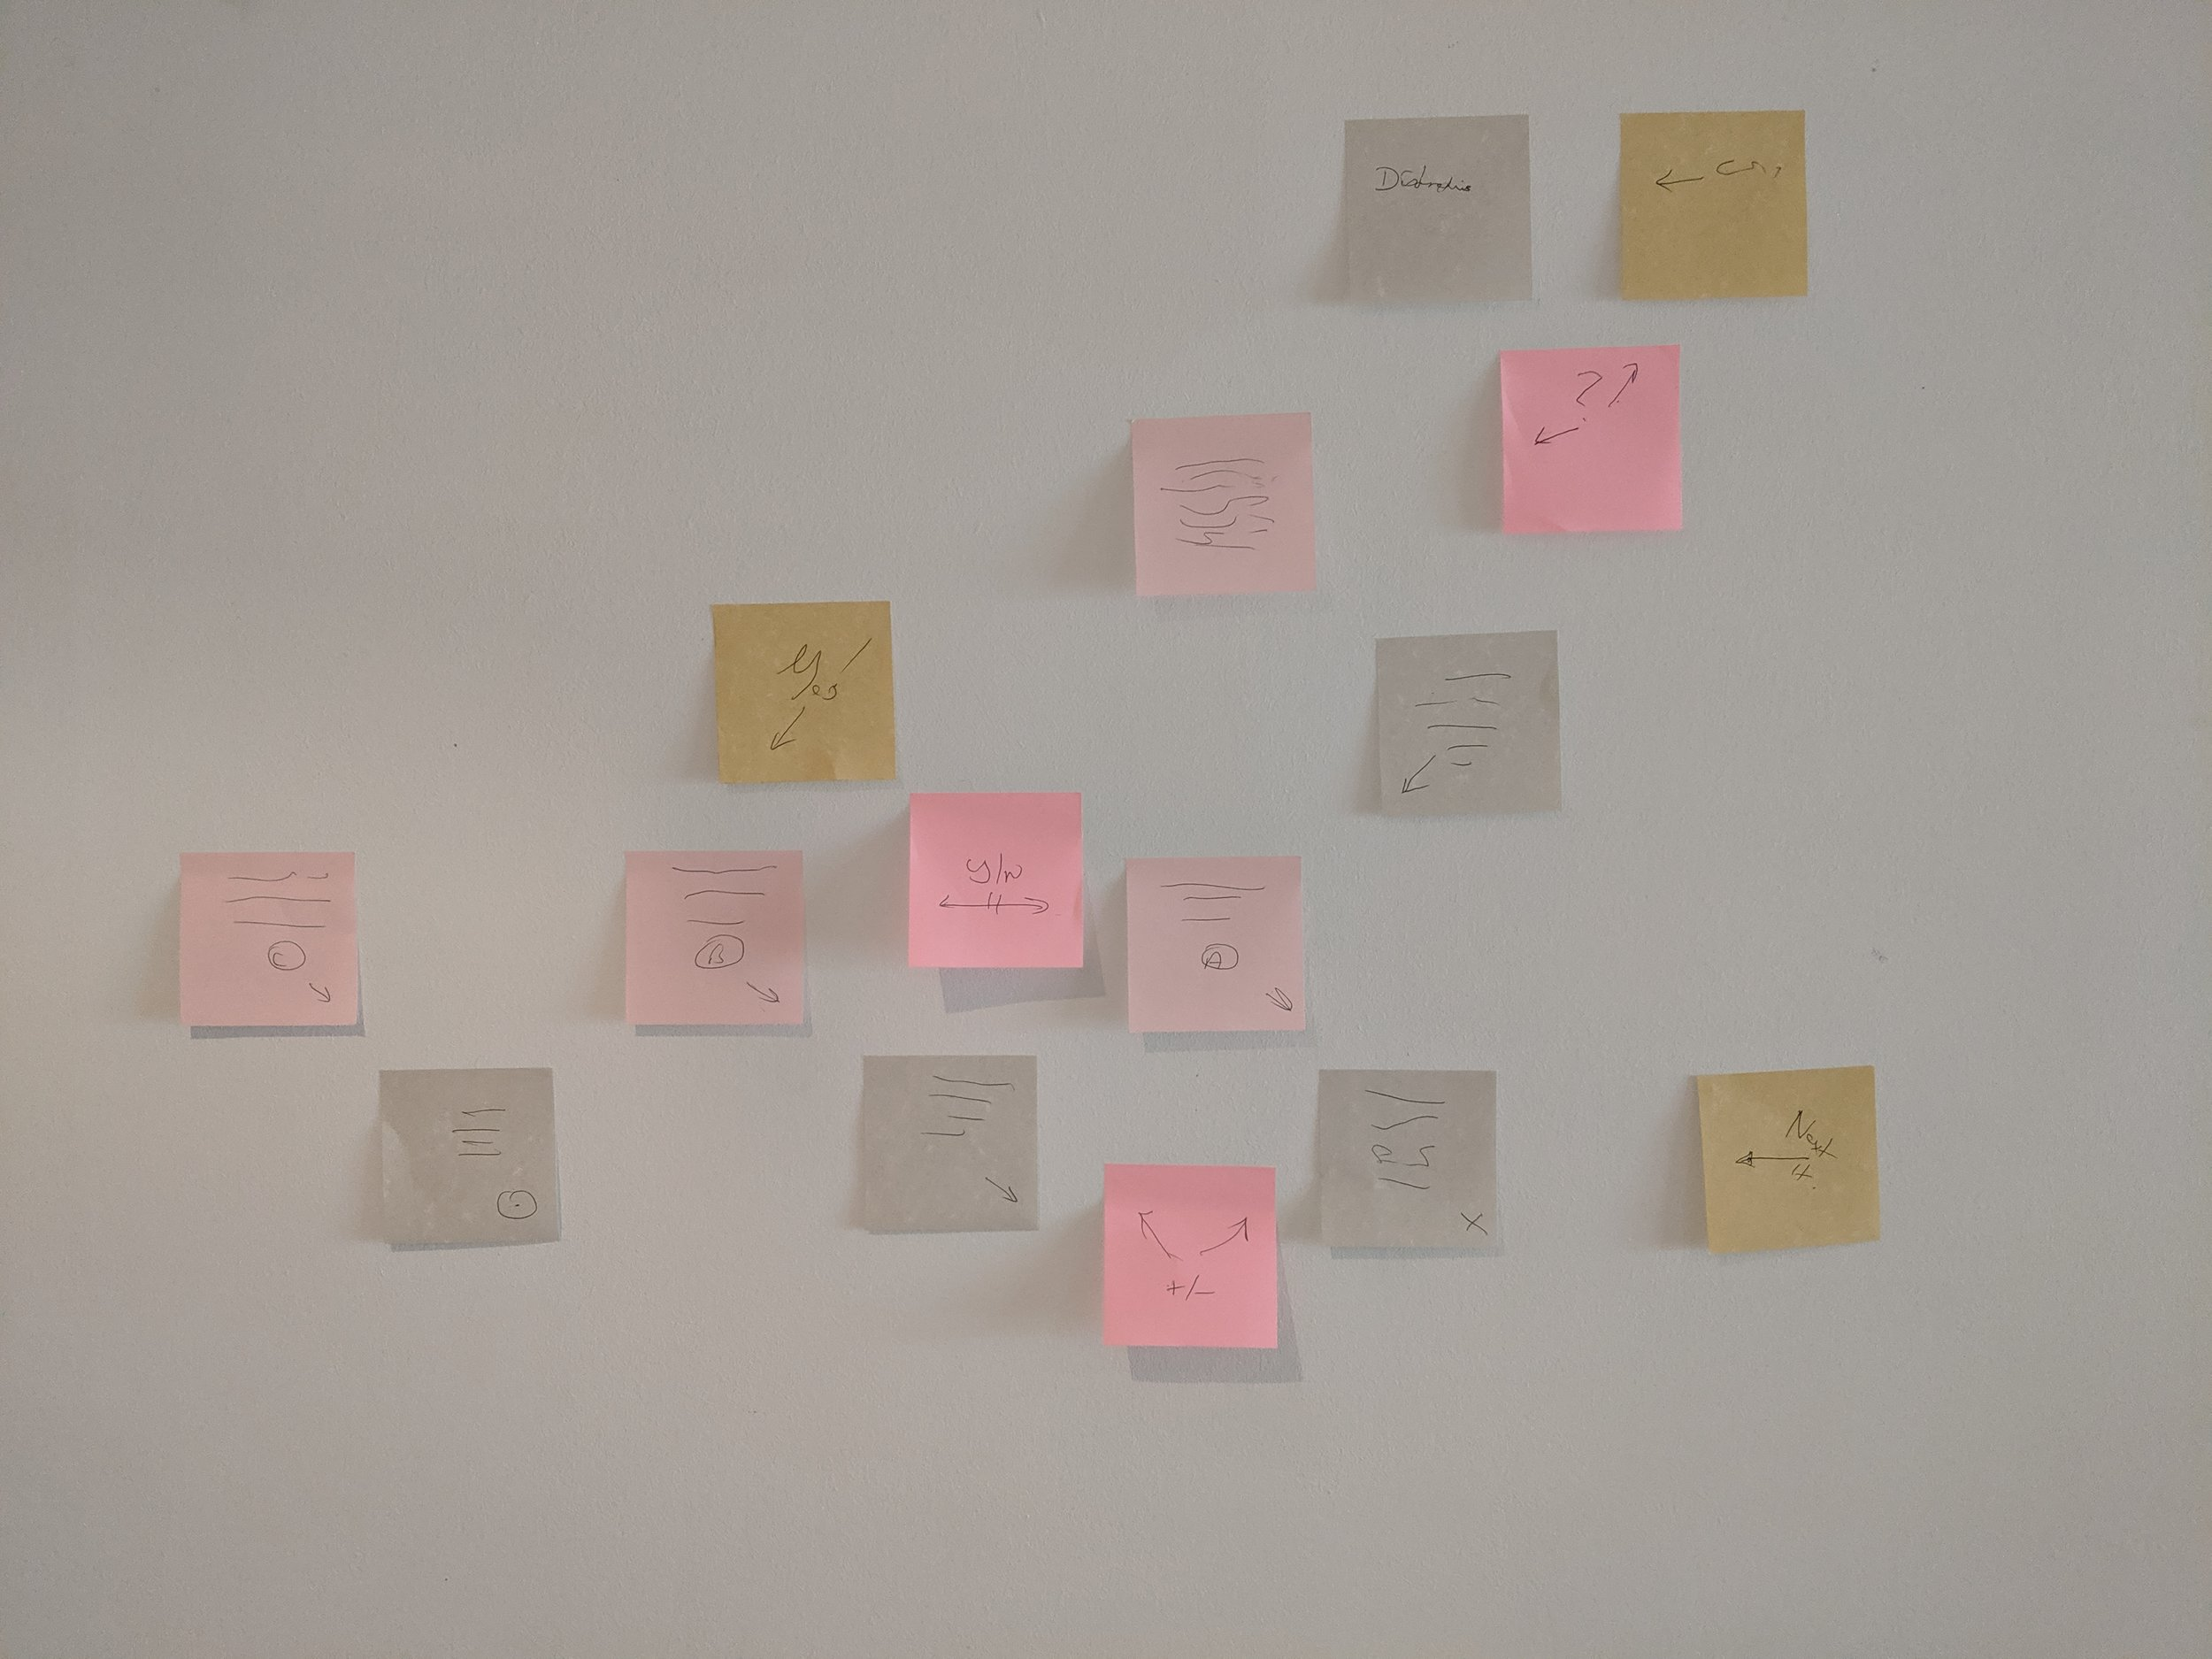 Decision Tree using post-it notes